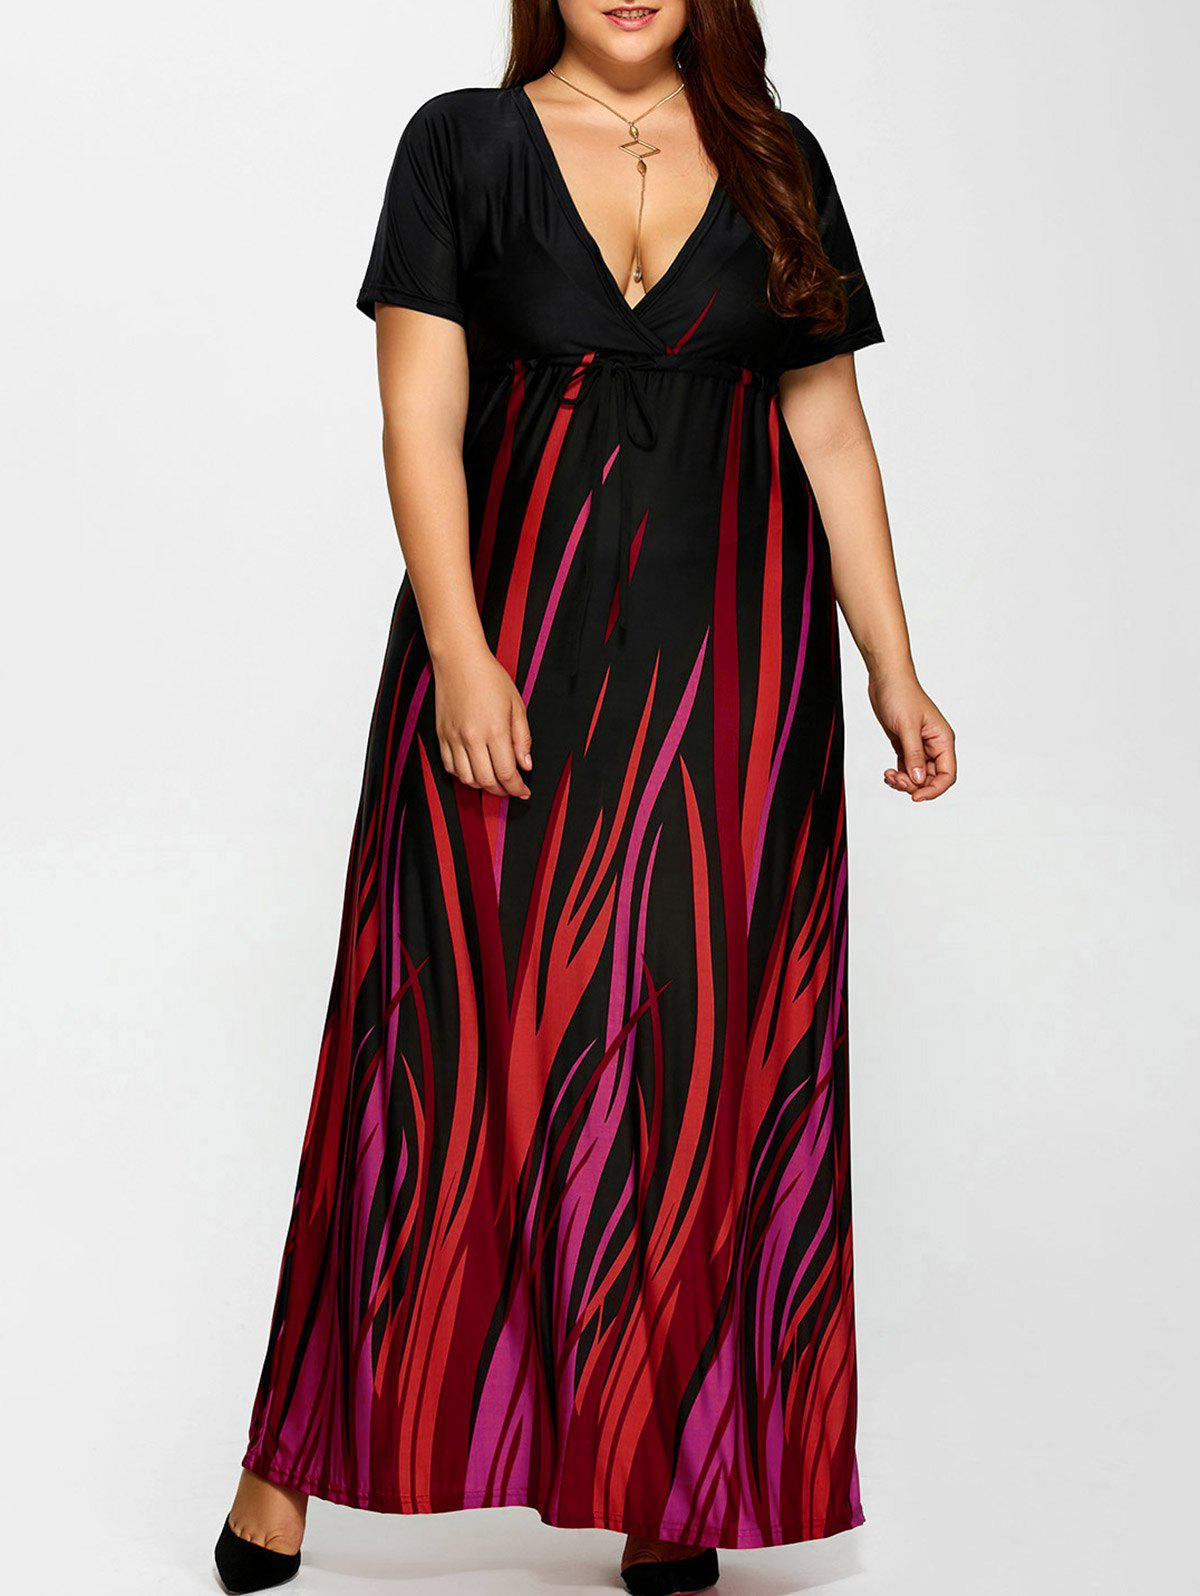 Plus Size Printed Empire Waist Maxi Formal A Line Party Dress iolani plus size new teal printed empire waist maxi dress 2x $114 dbfl